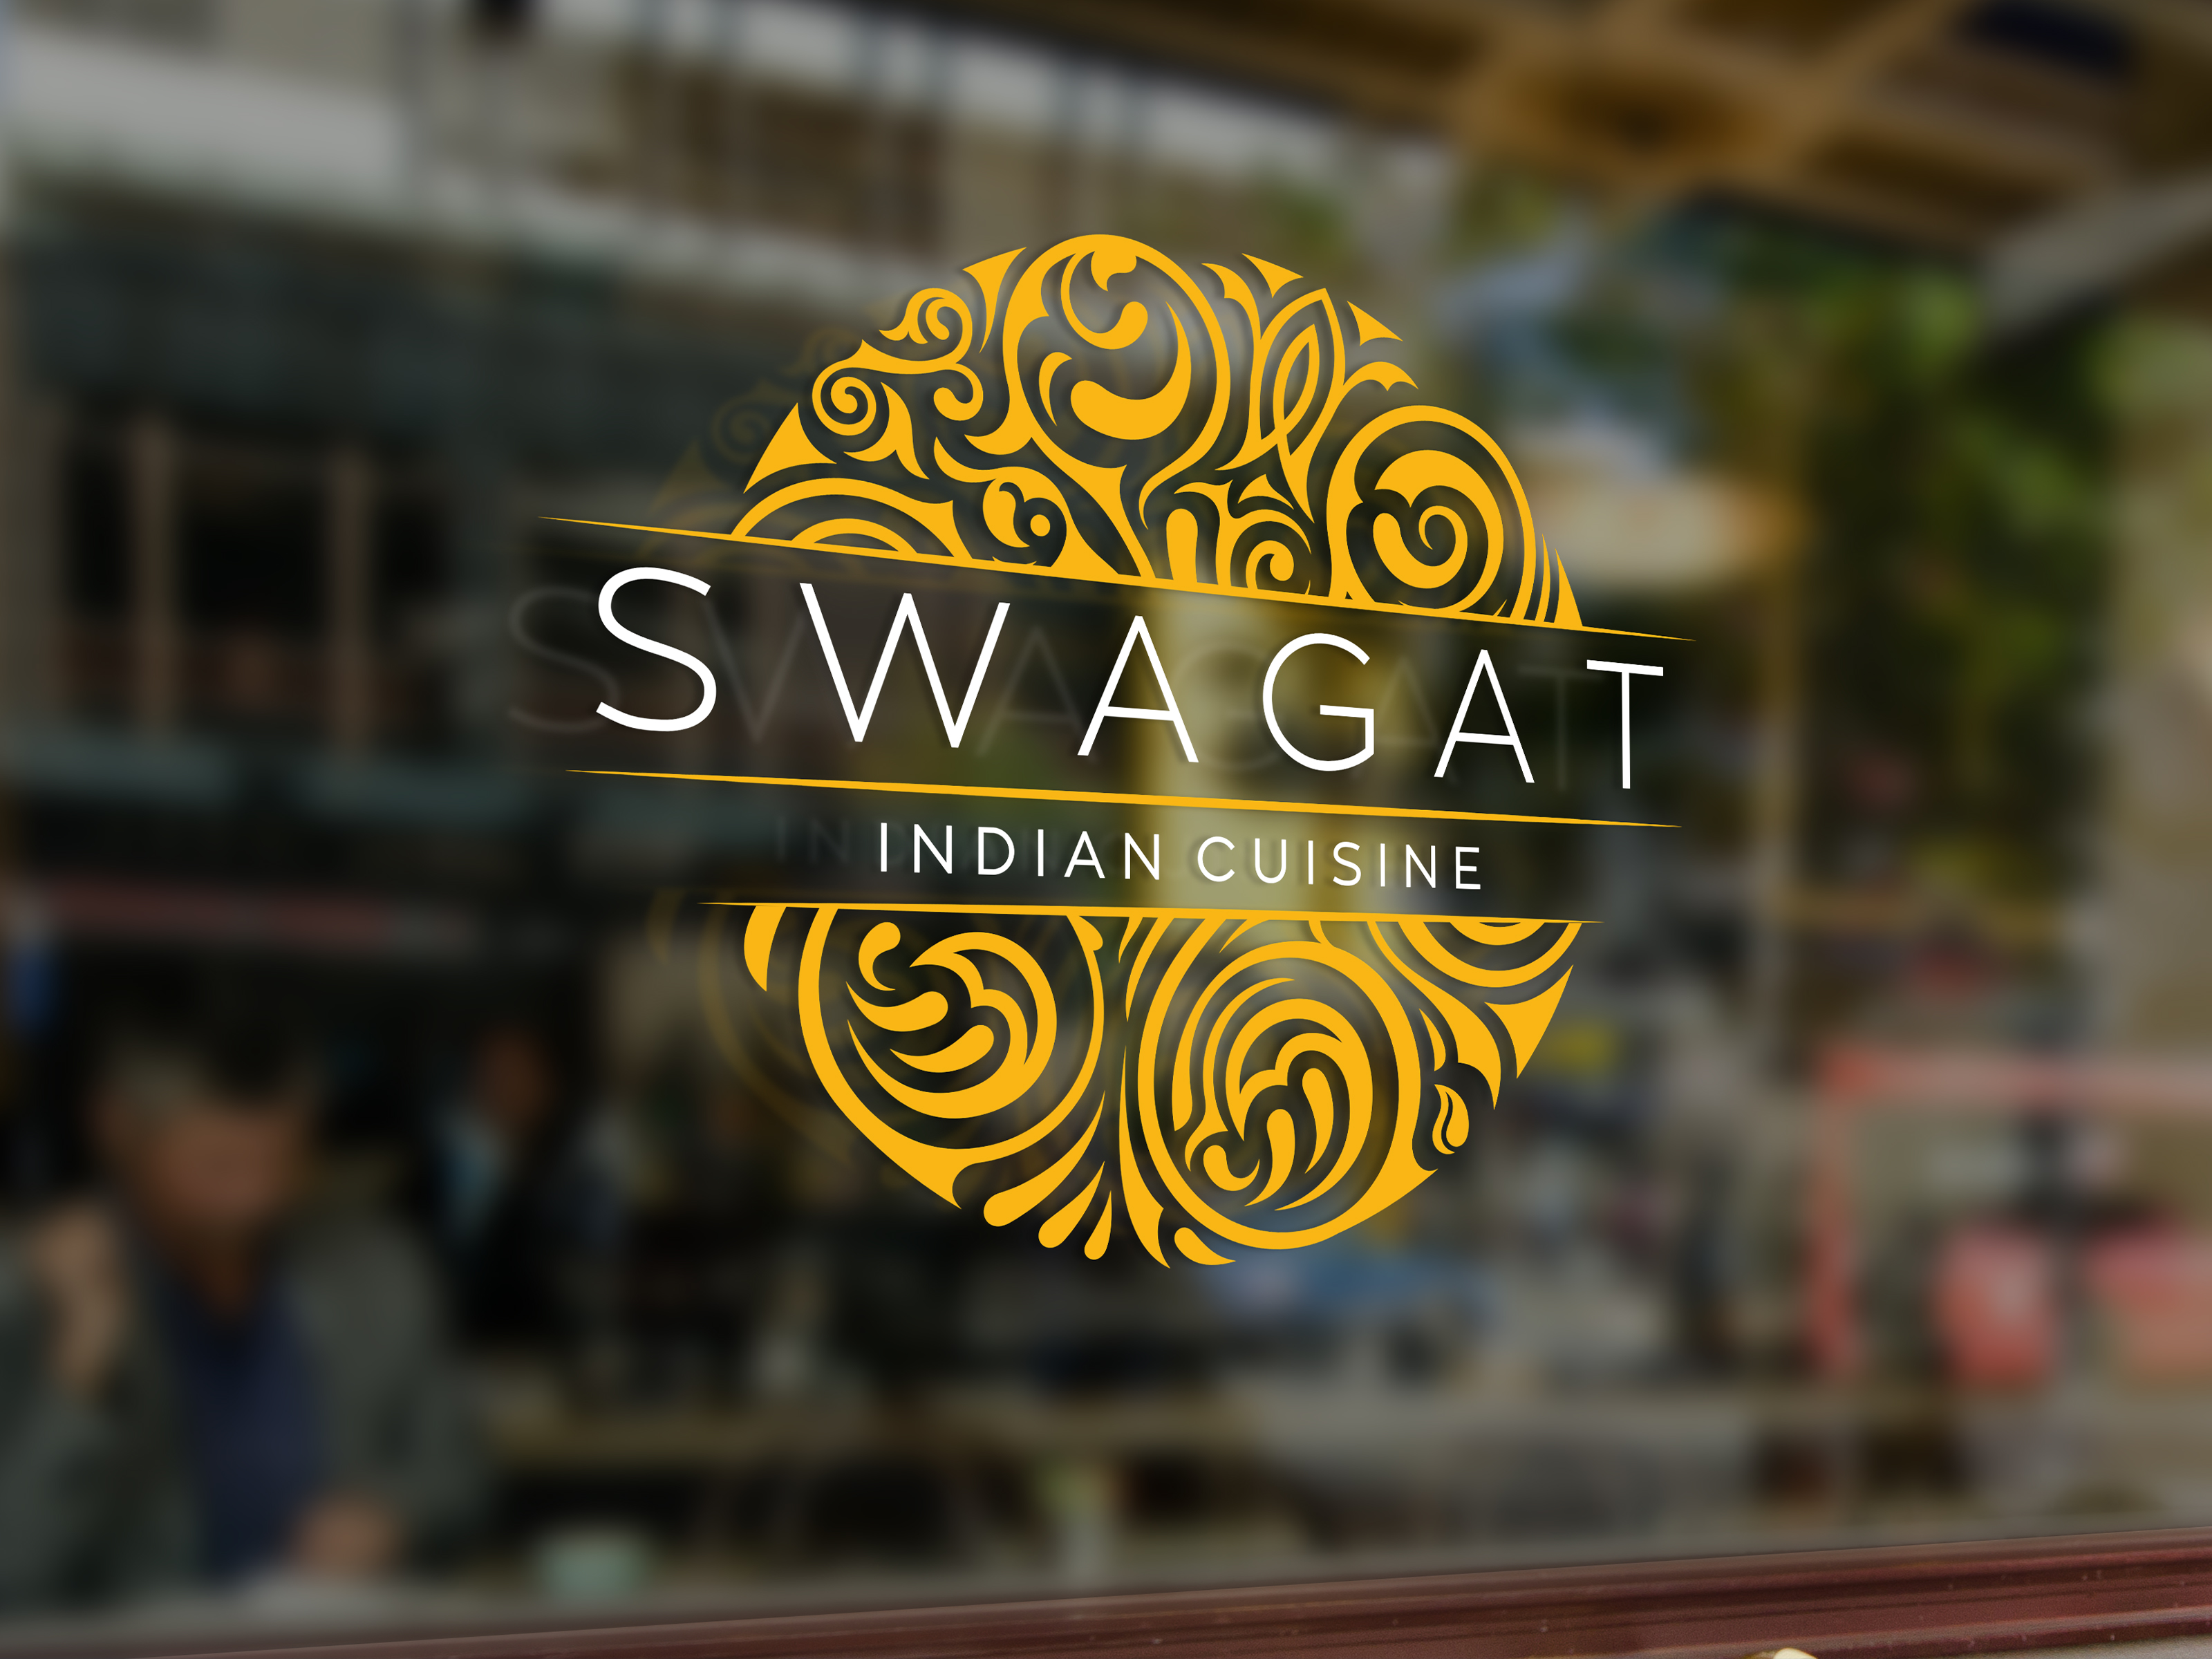 Swagat portfolio display. Logo mocked up on window of restaurant.